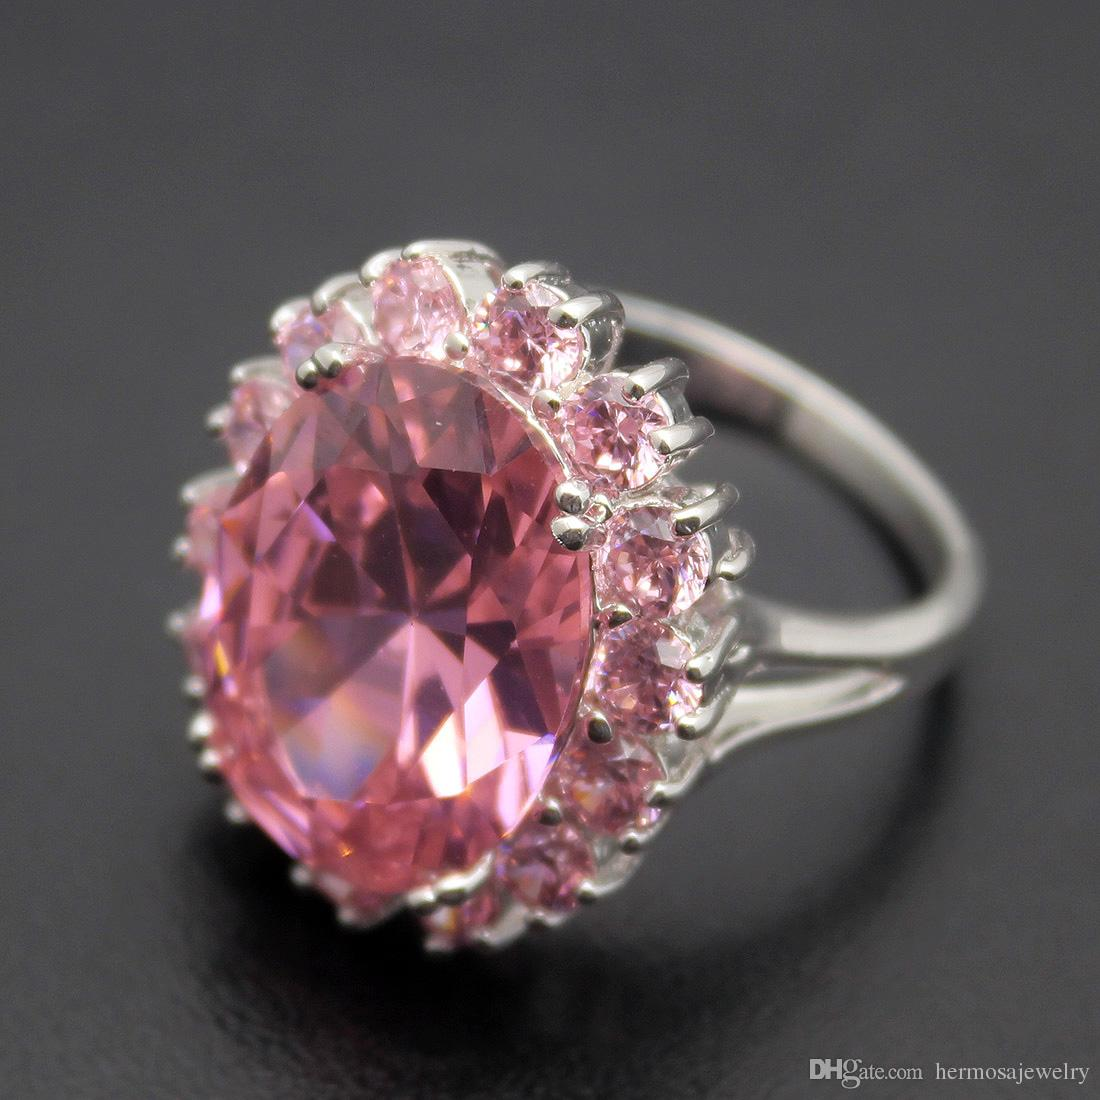 Wedding Band Ring 925 Sterling Silver Wedding Pink Topaz Kunzite Gemstone Crystal Sparkle wholesale Ring Size 7 8 9